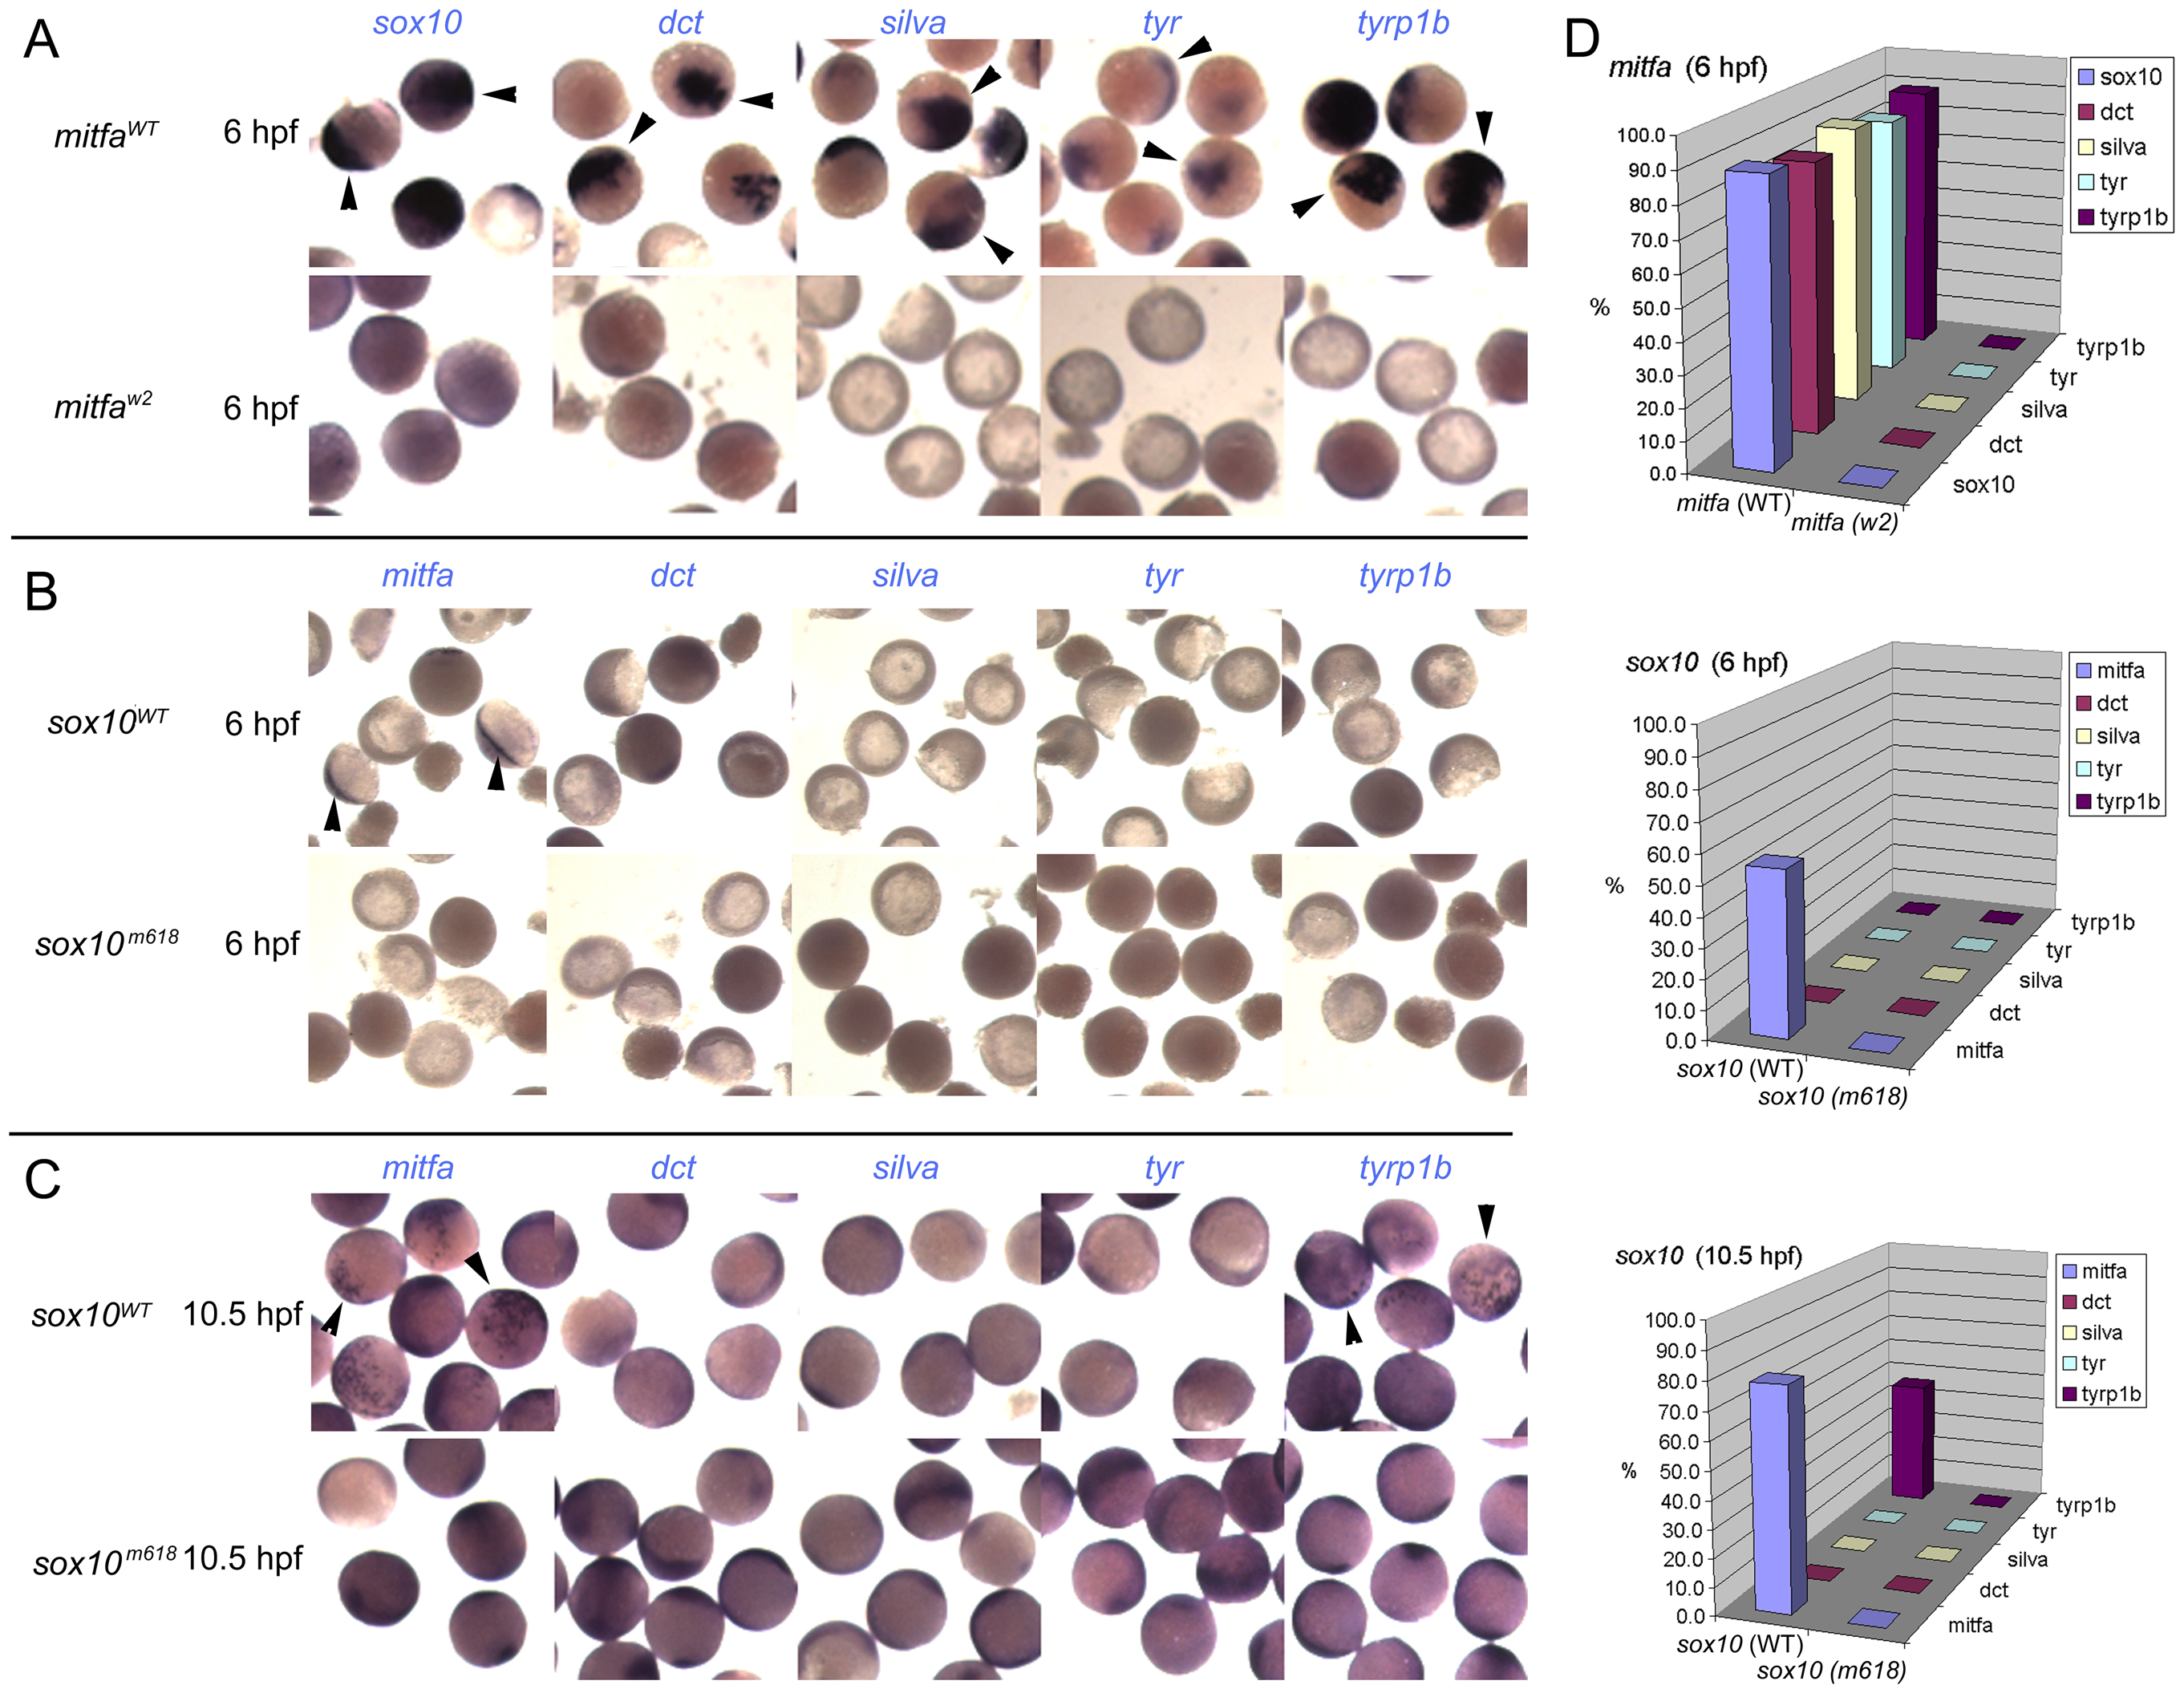 Induction of Mitfa-responsive genes is largely suppressed by Sox10.